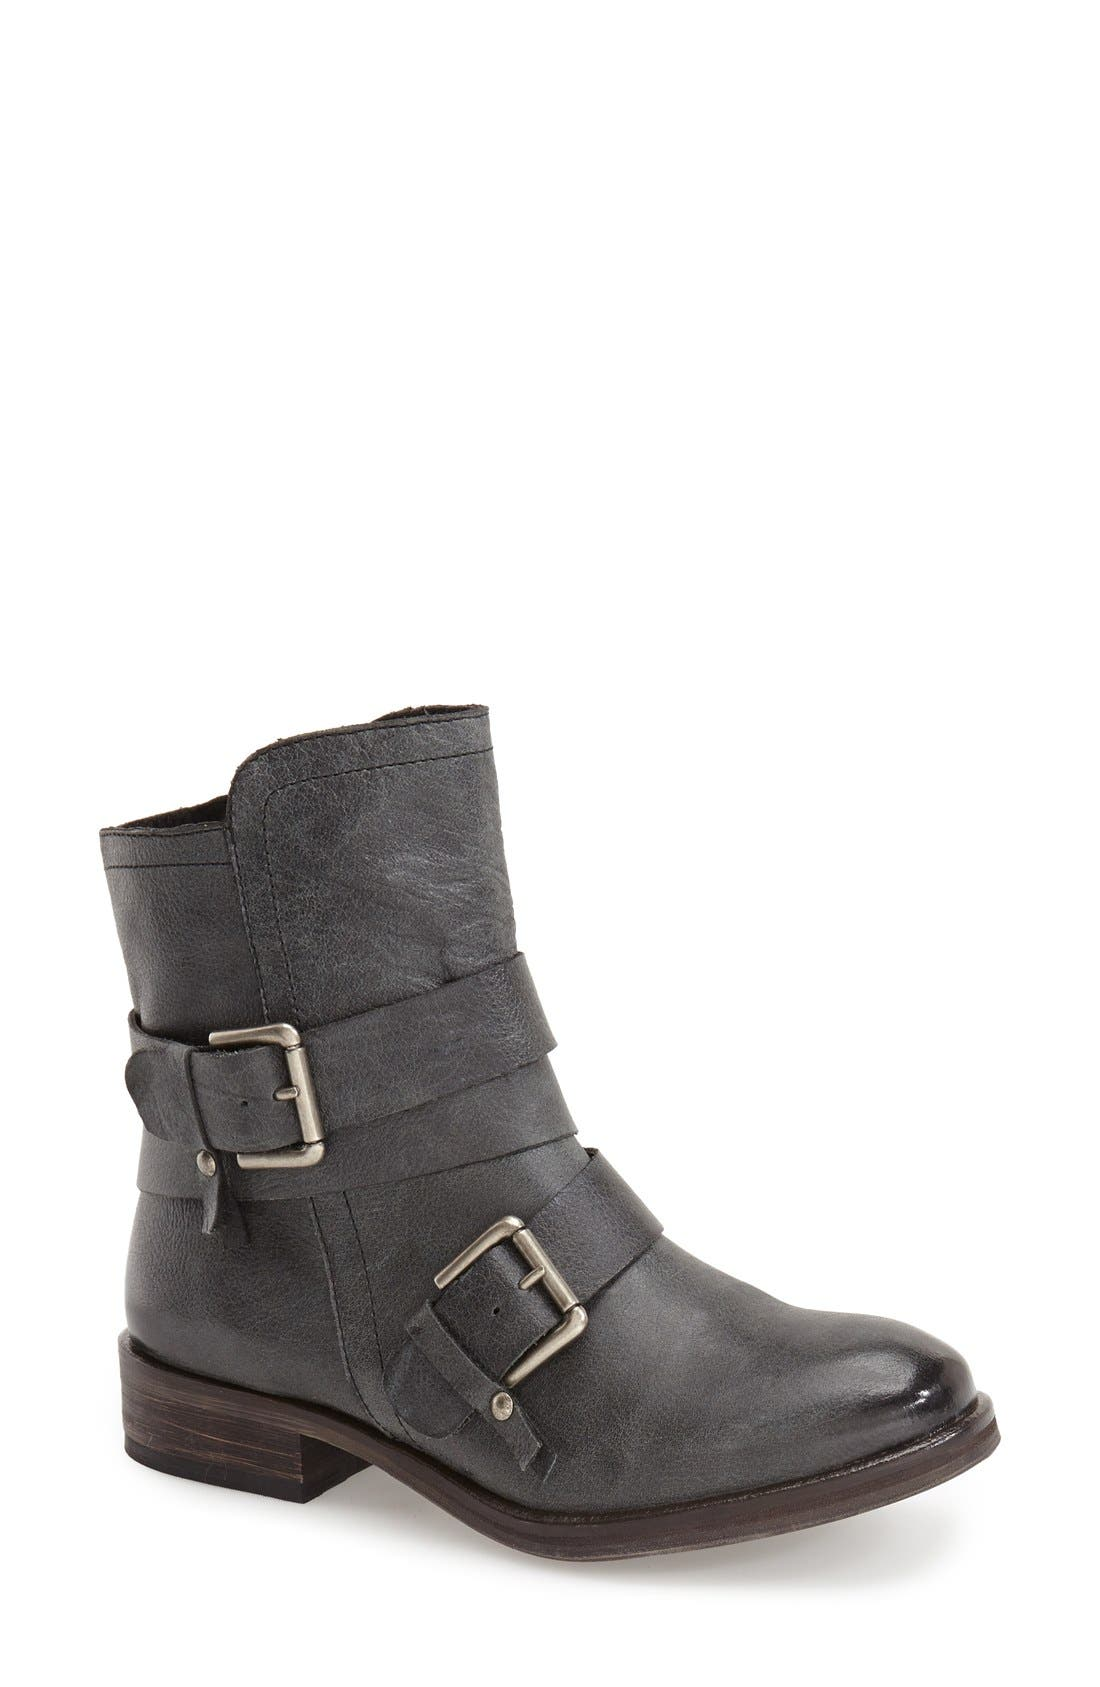 Treasure&Bond 'Sabana' Short Boot,                         Main,                         color, 001